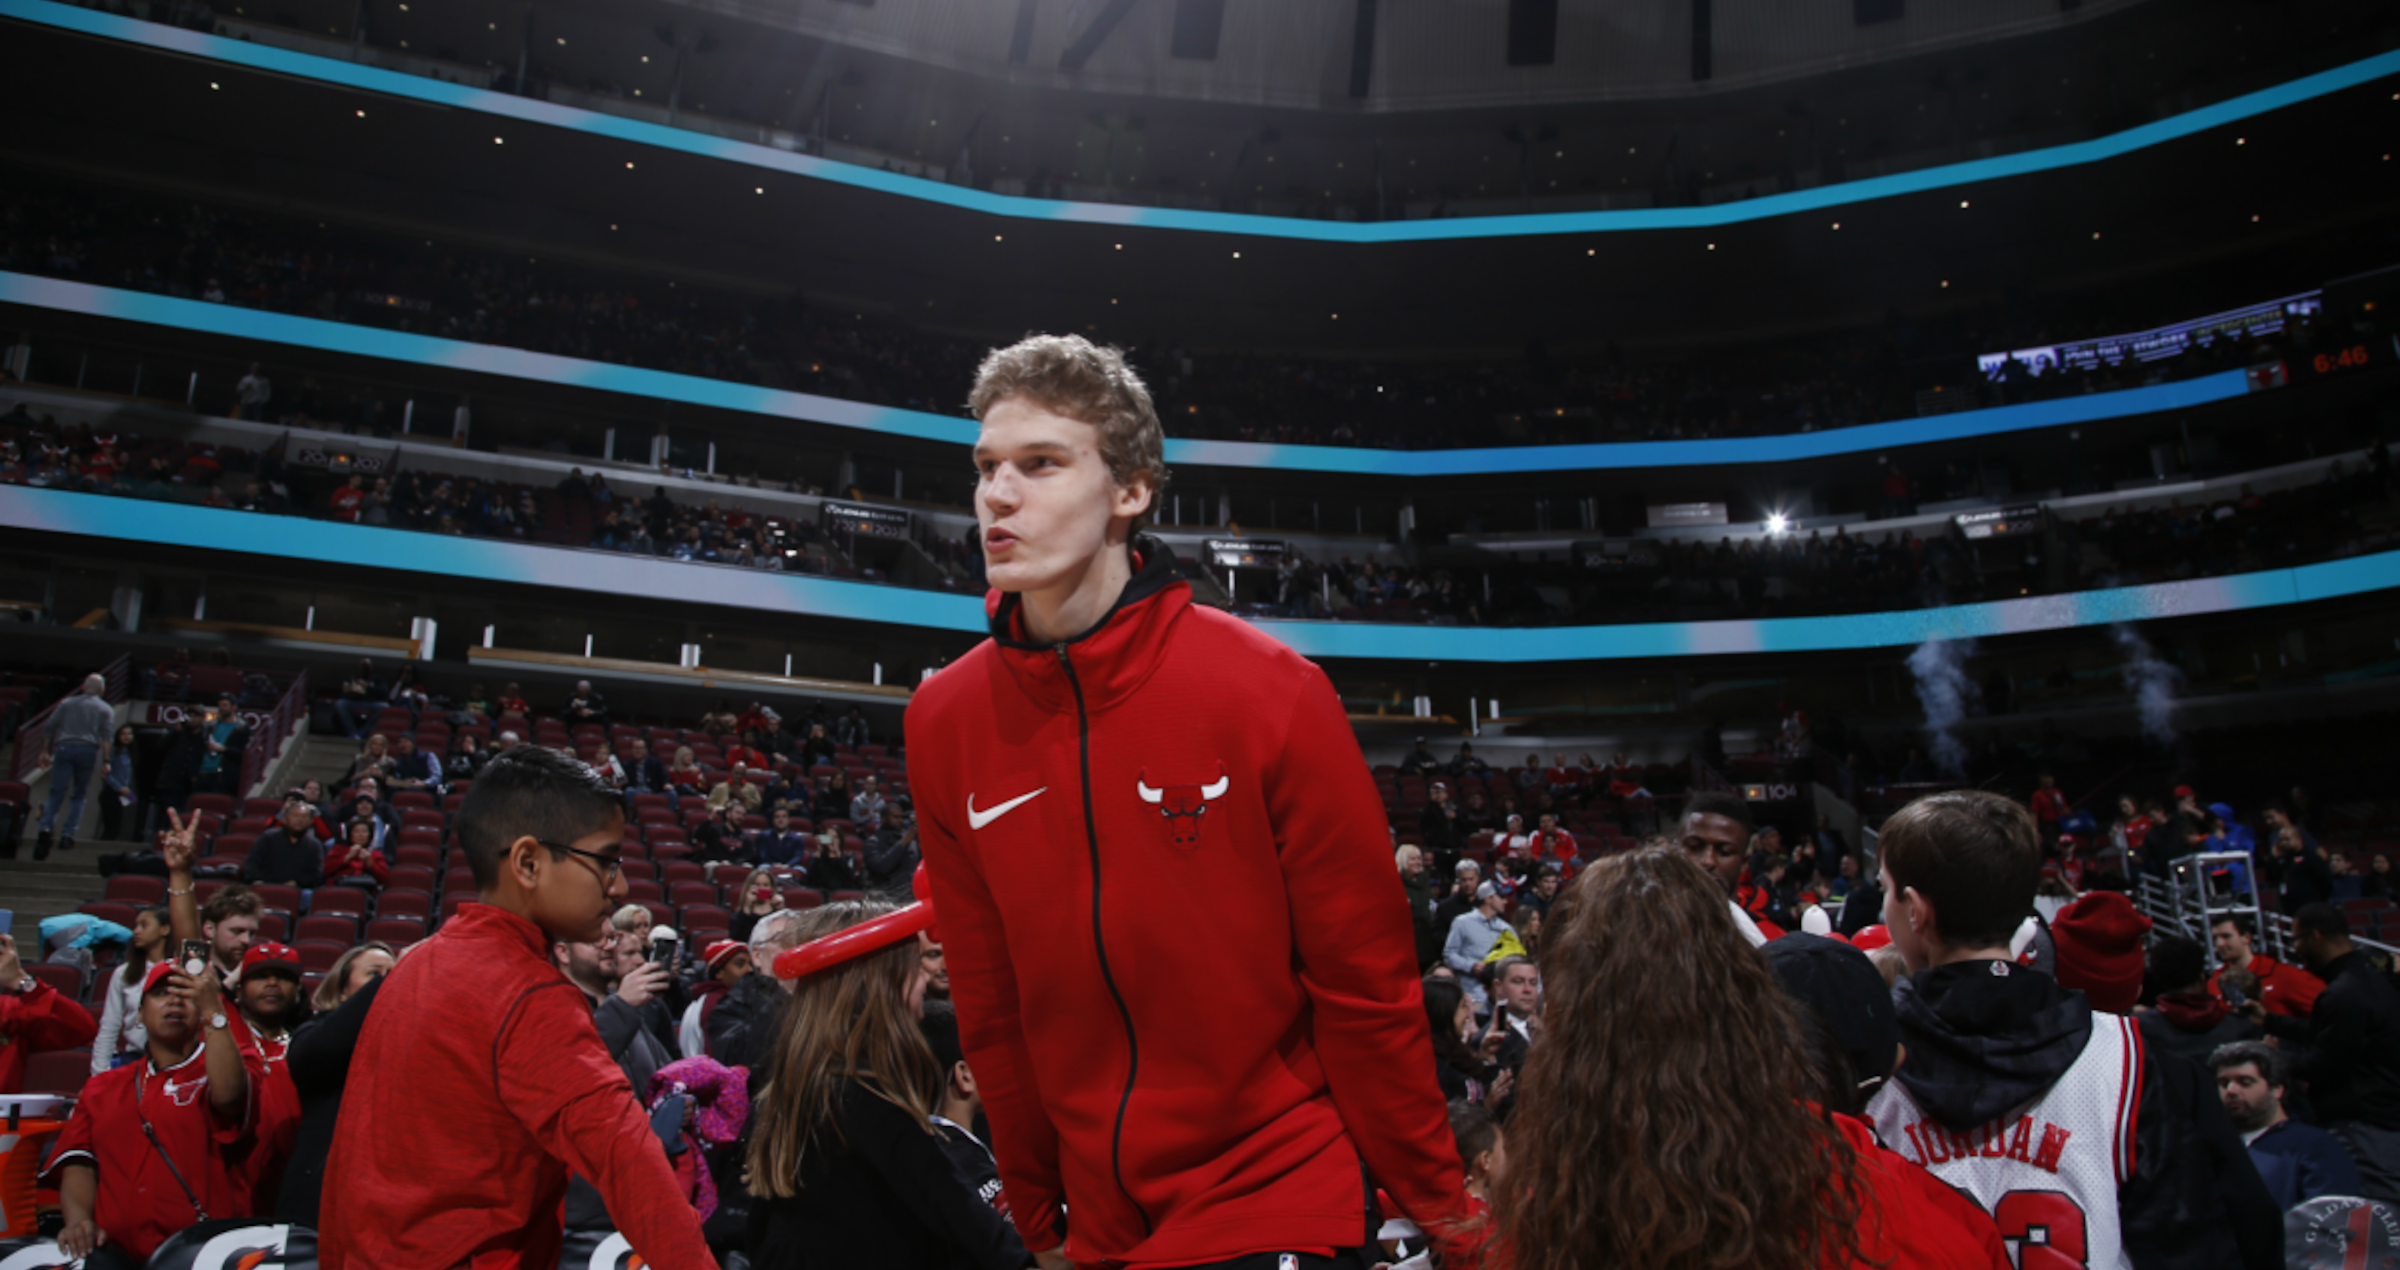 Markkanen runs out of the tunnel for warmups